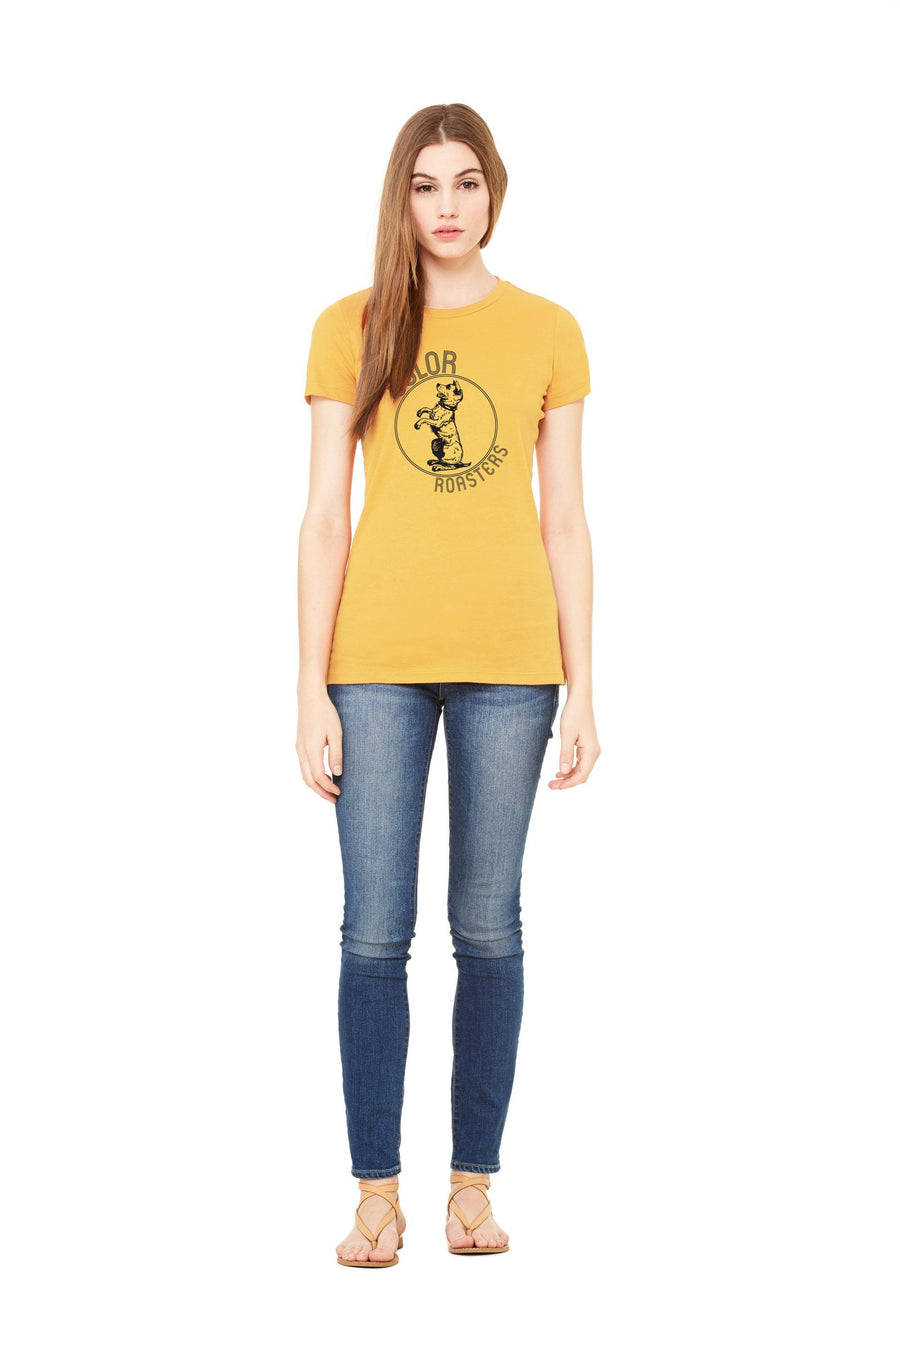 women model in Color Roasters, Jack Garland designed woman's tee